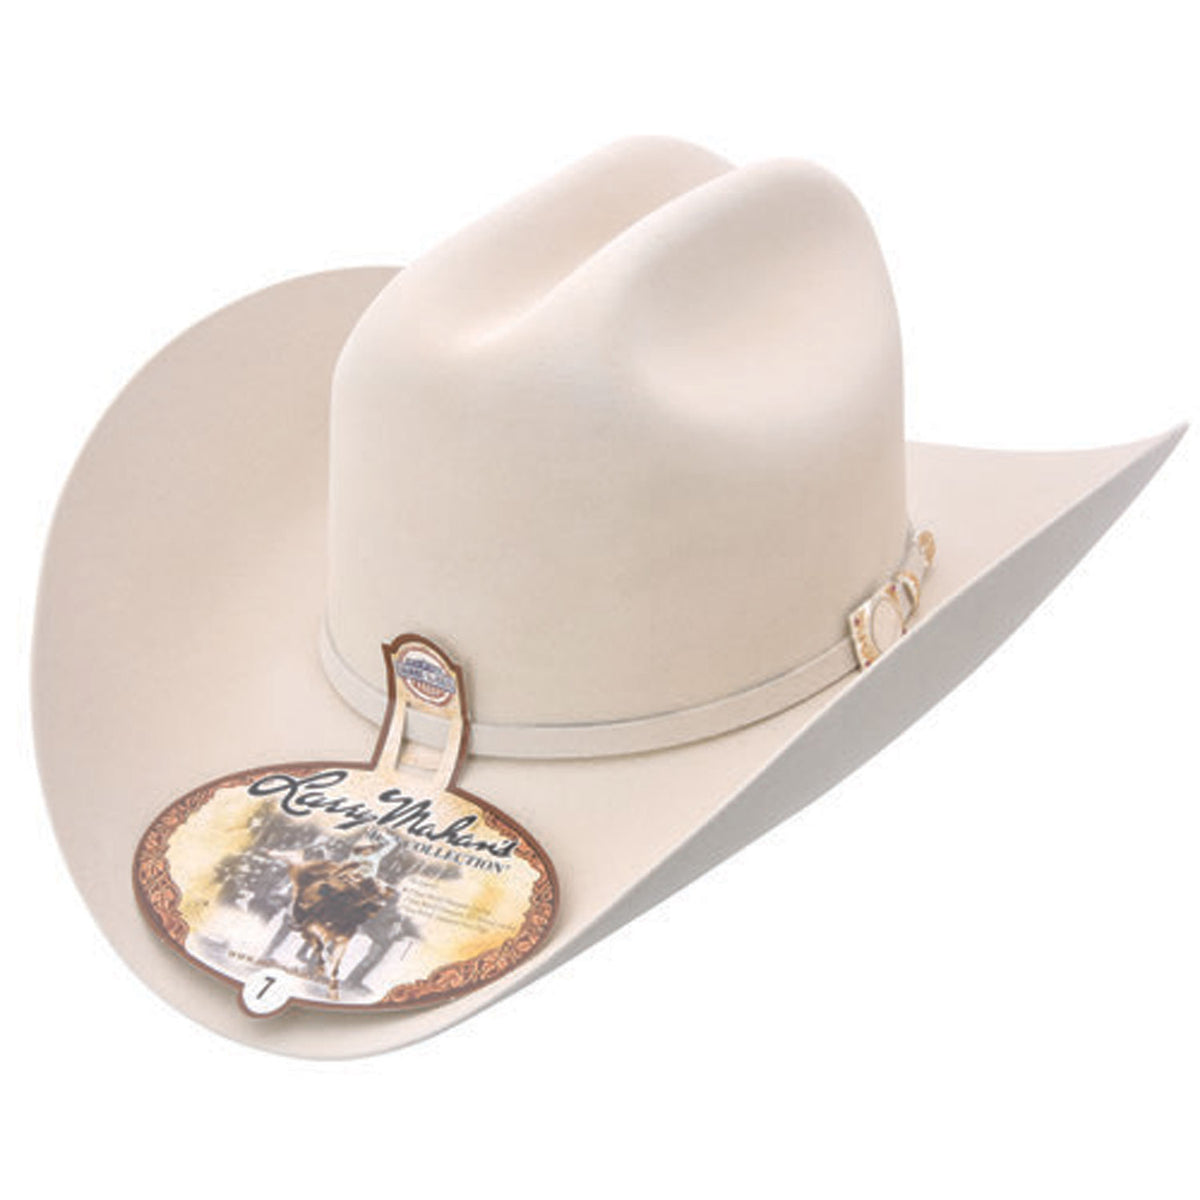 Larry Mahan's Independencia 100X Cowboy Hat